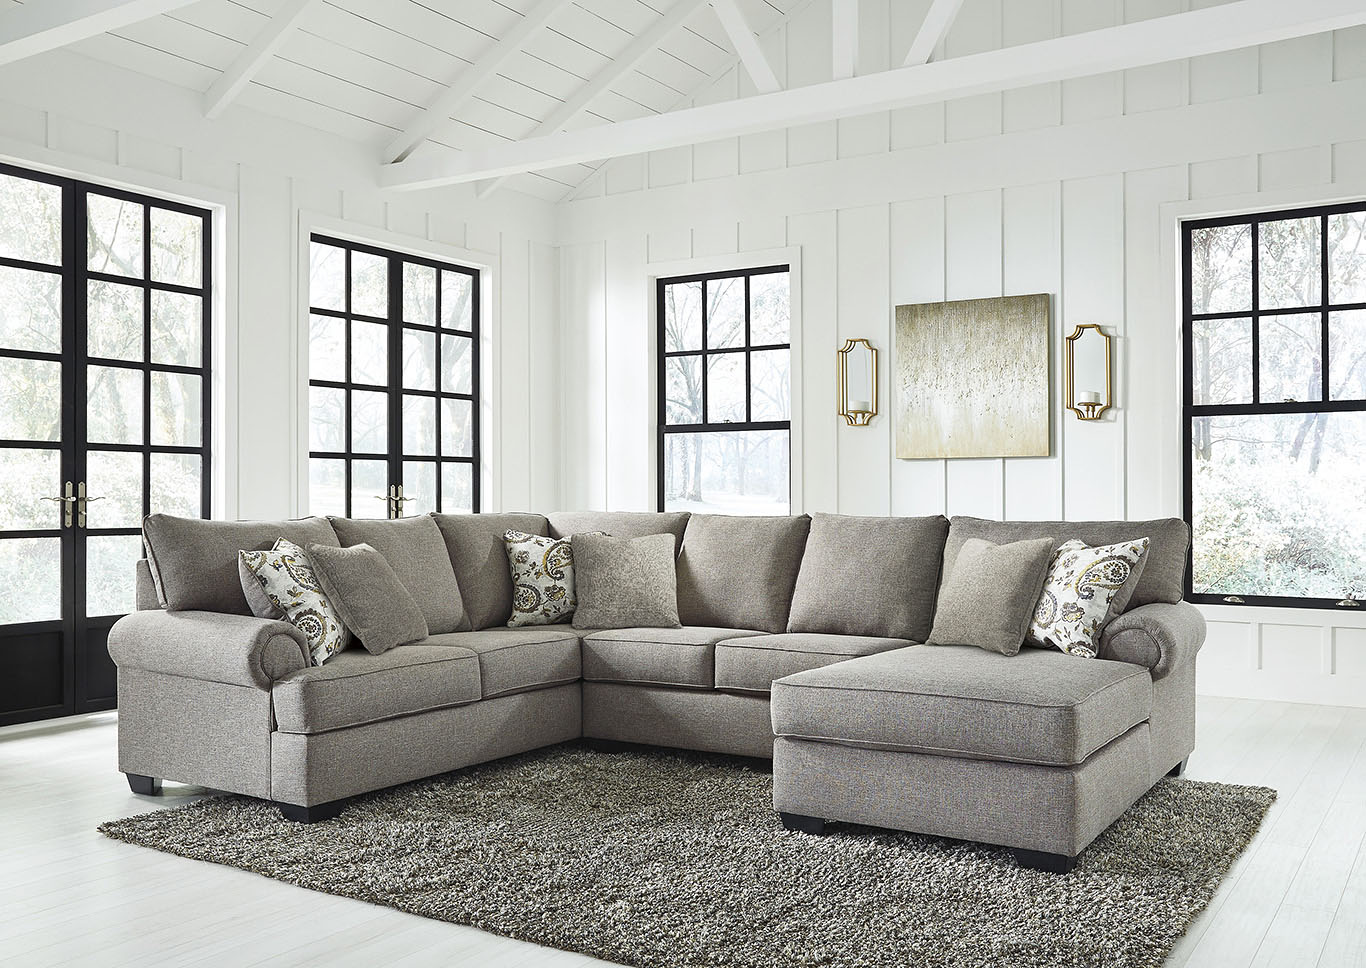 Renchen Pewter RAF Chaise Sectional,Signature Design By Ashley